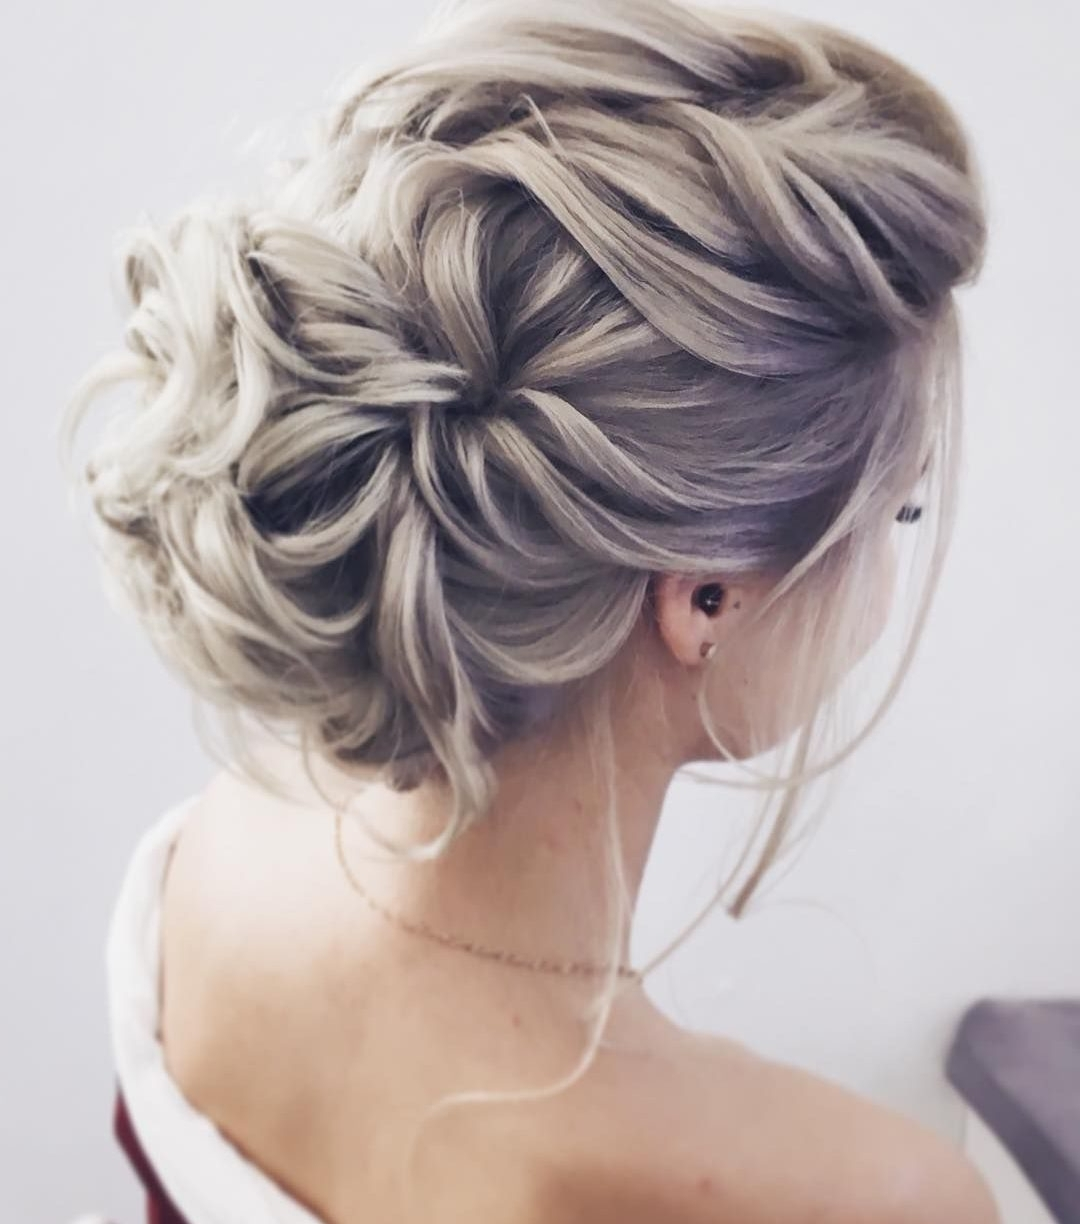 Widely Used Put Up Wedding Hairstyles For Long Hair For Up Hairstyles For Wedding Ideas Elegant Bridal Half Down With Braids (View 15 of 15)